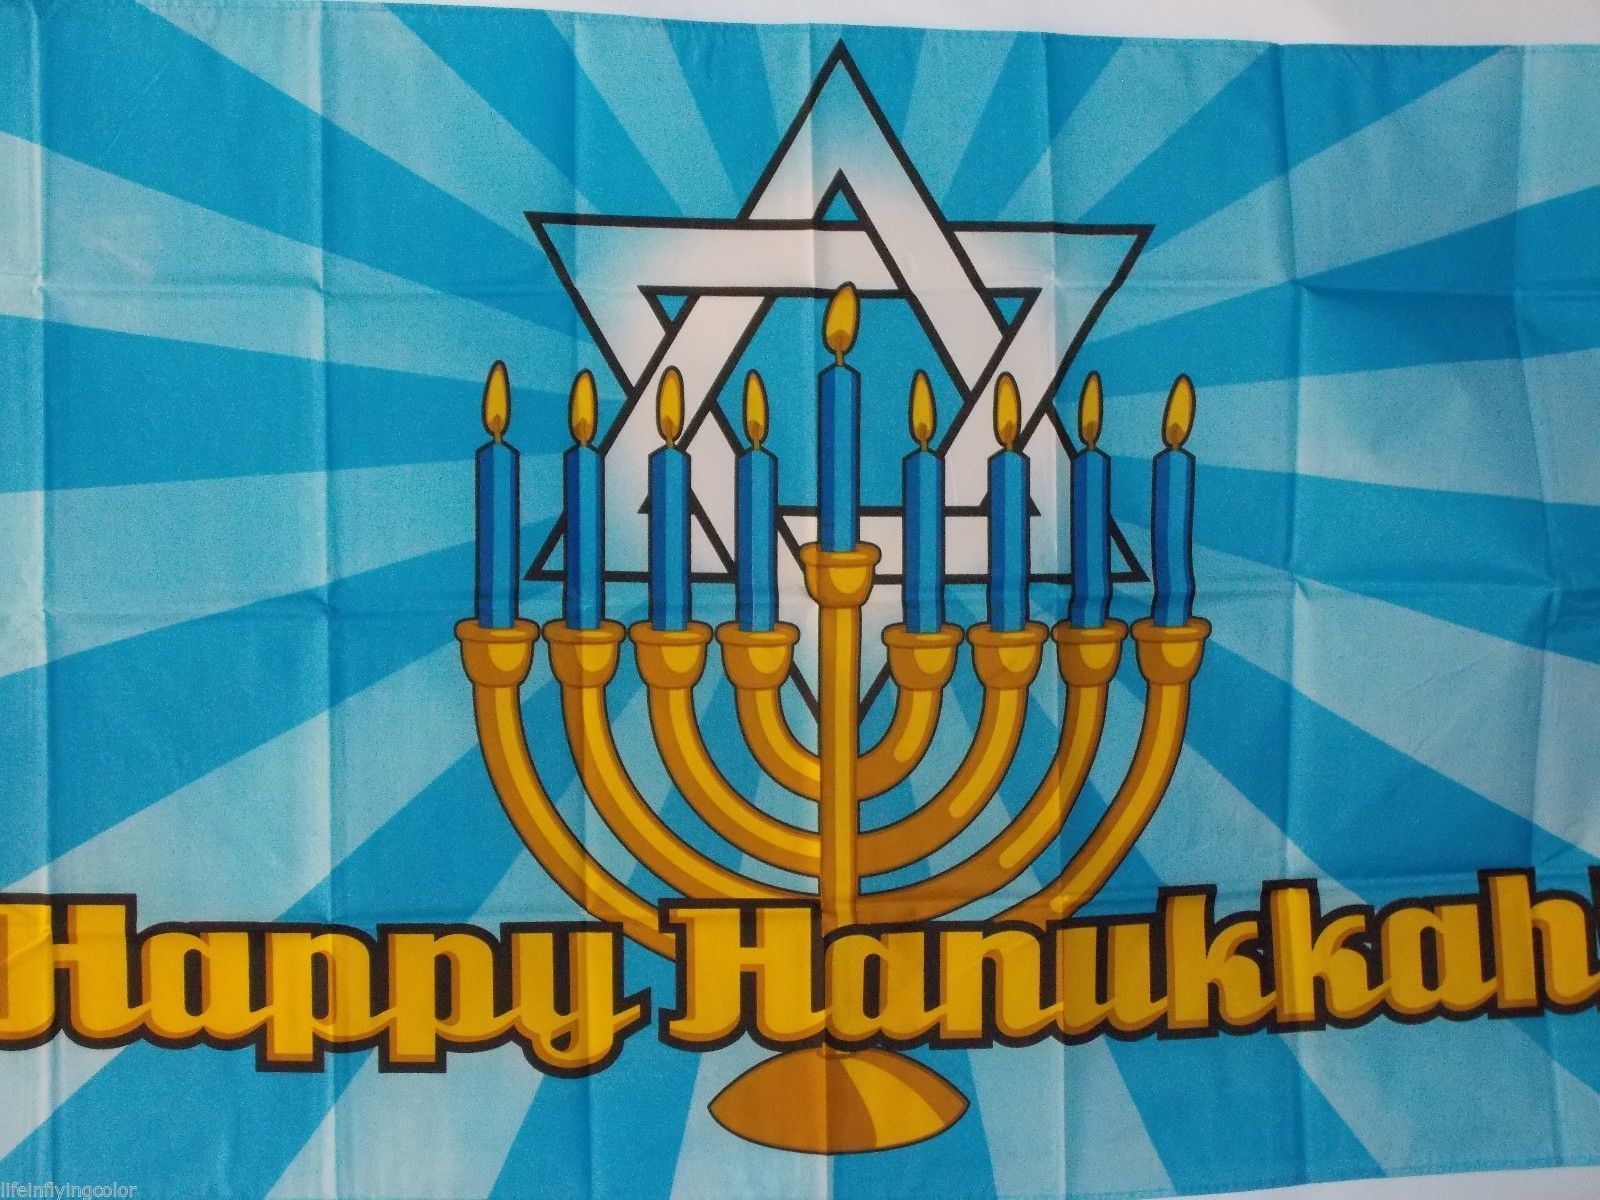 HAPPY HANUKKAH 3X5' FLAG BANNER NEW FESTIVAL OF LIGHTS JEWISH HOLIDAY